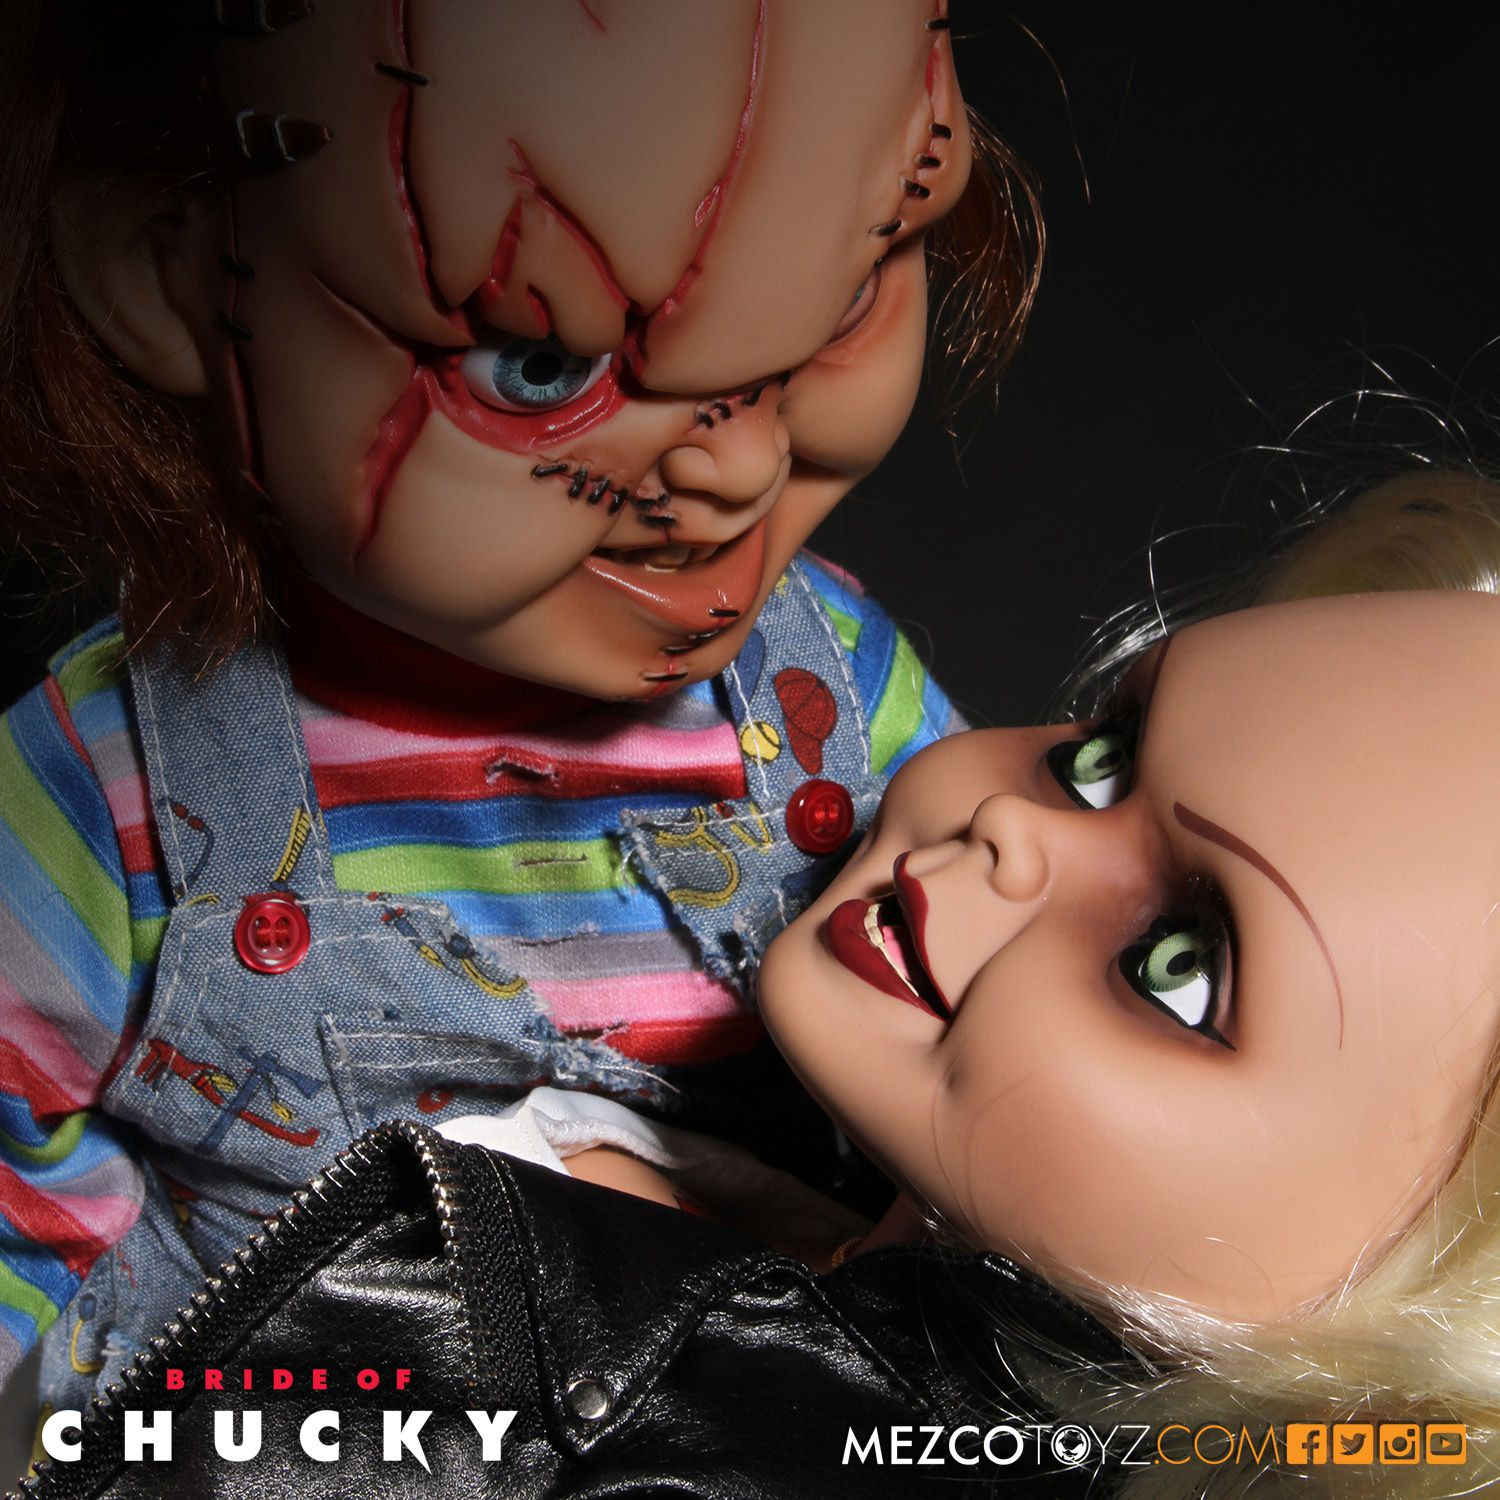 Chucky and tiffany porn can not